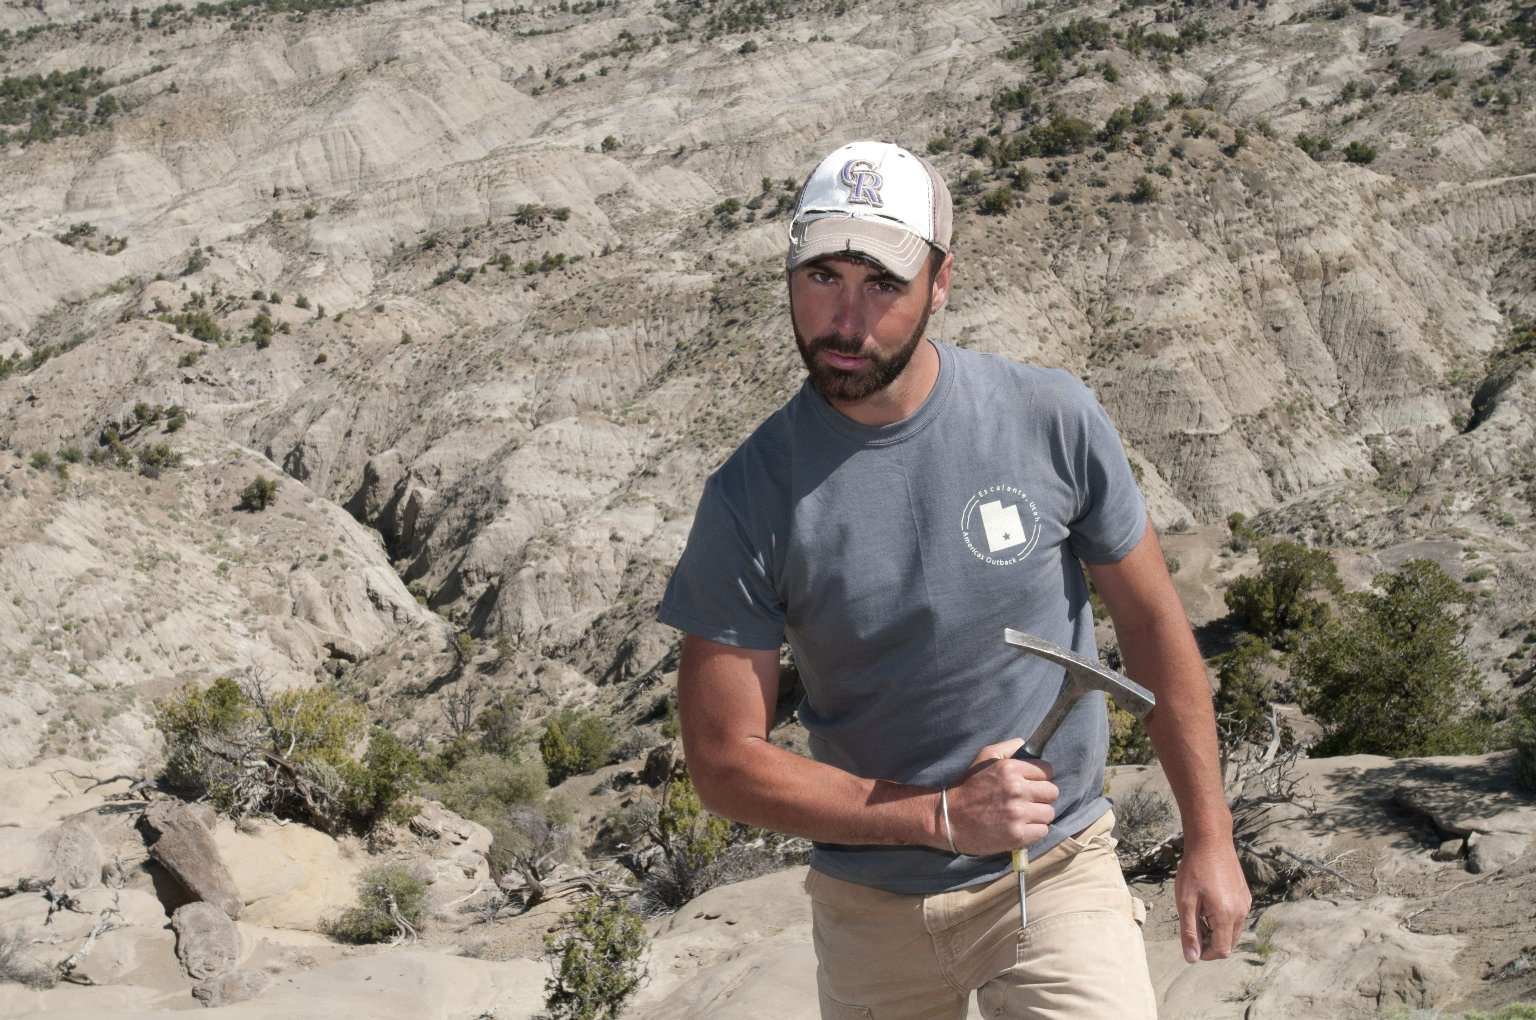 Dr. Joseph Sertich, DMNS Curator of Vertebrate Paleontology, is armed with a hammer and a chisel as he looks for specimens.